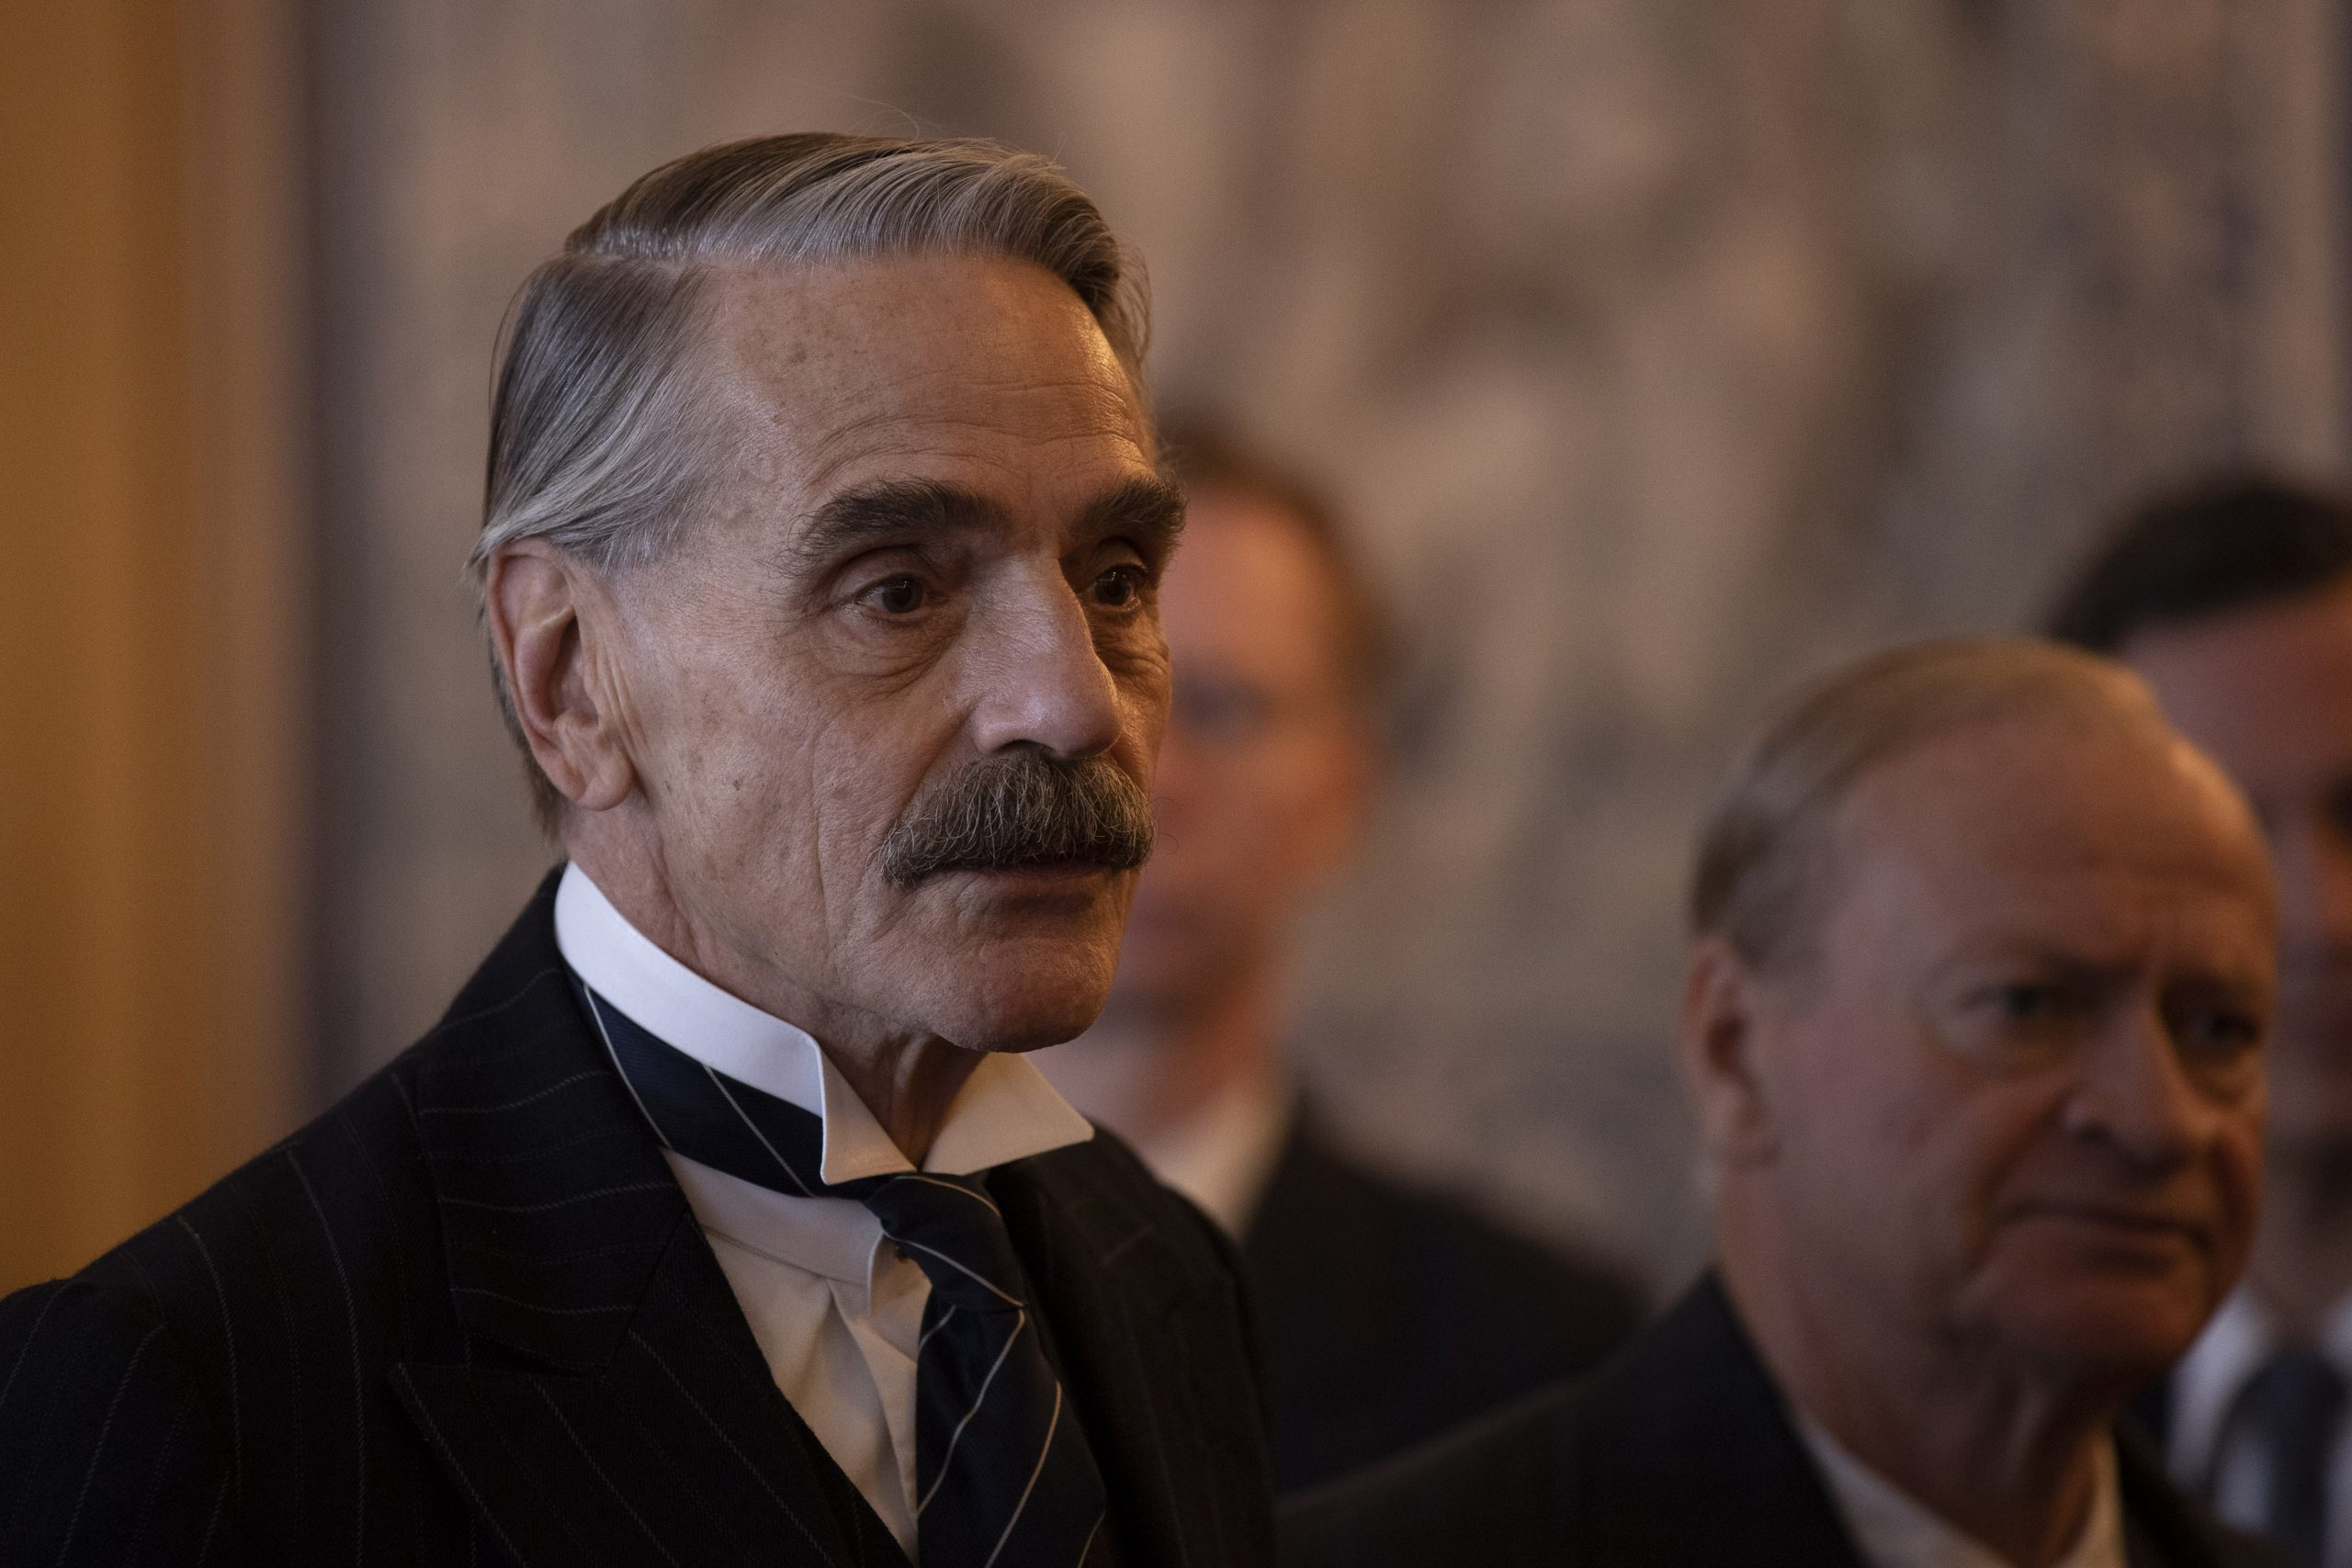 Jeremy Irons as UK's Prime Minister Neville Chamberlain in Munich